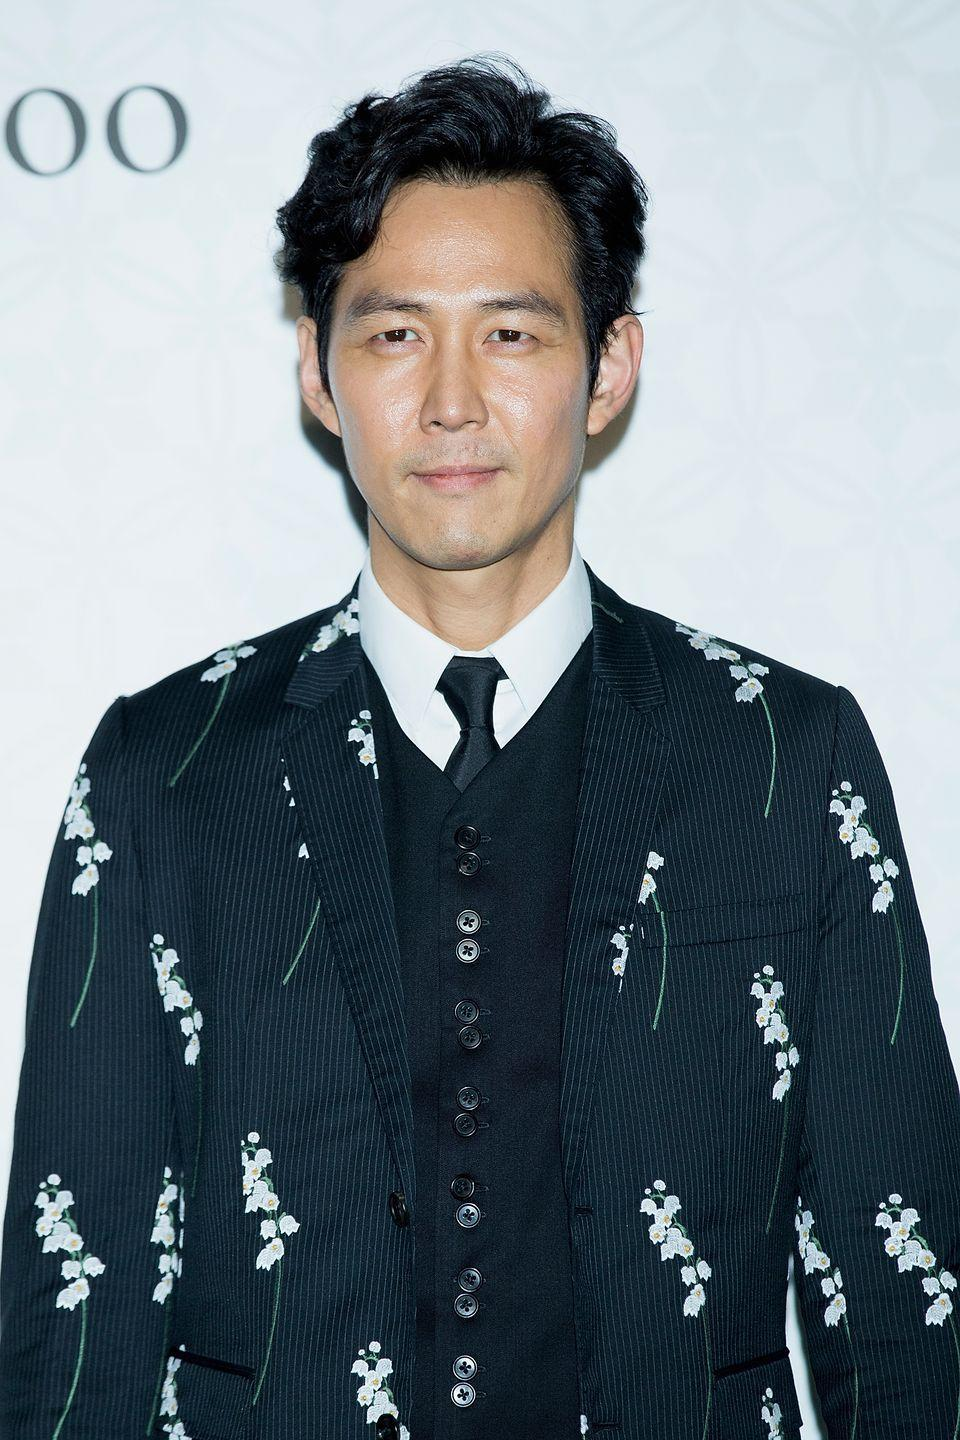 <p>Jung-jae, 48, plays a gambler in the Game, but he started out his career in South Korea as a fashion model. In 1999 he won the Best Actor award at the Blue Dragon Film Awards for City of the Rising Sun and starred in films such as An Affair and Housemaid. In recent years, however, he has also been known for becoming a restauranteur and owns an Italian restaurant in Daehangno, Seoul named after his film Il Mare. A former student of interior design, it's believe he often designs the interiors of his eateries and works alongside his friend and partner Jung Woo-sun (who is a fellow City of the Rising Sun actor) in several business ventures.</p>